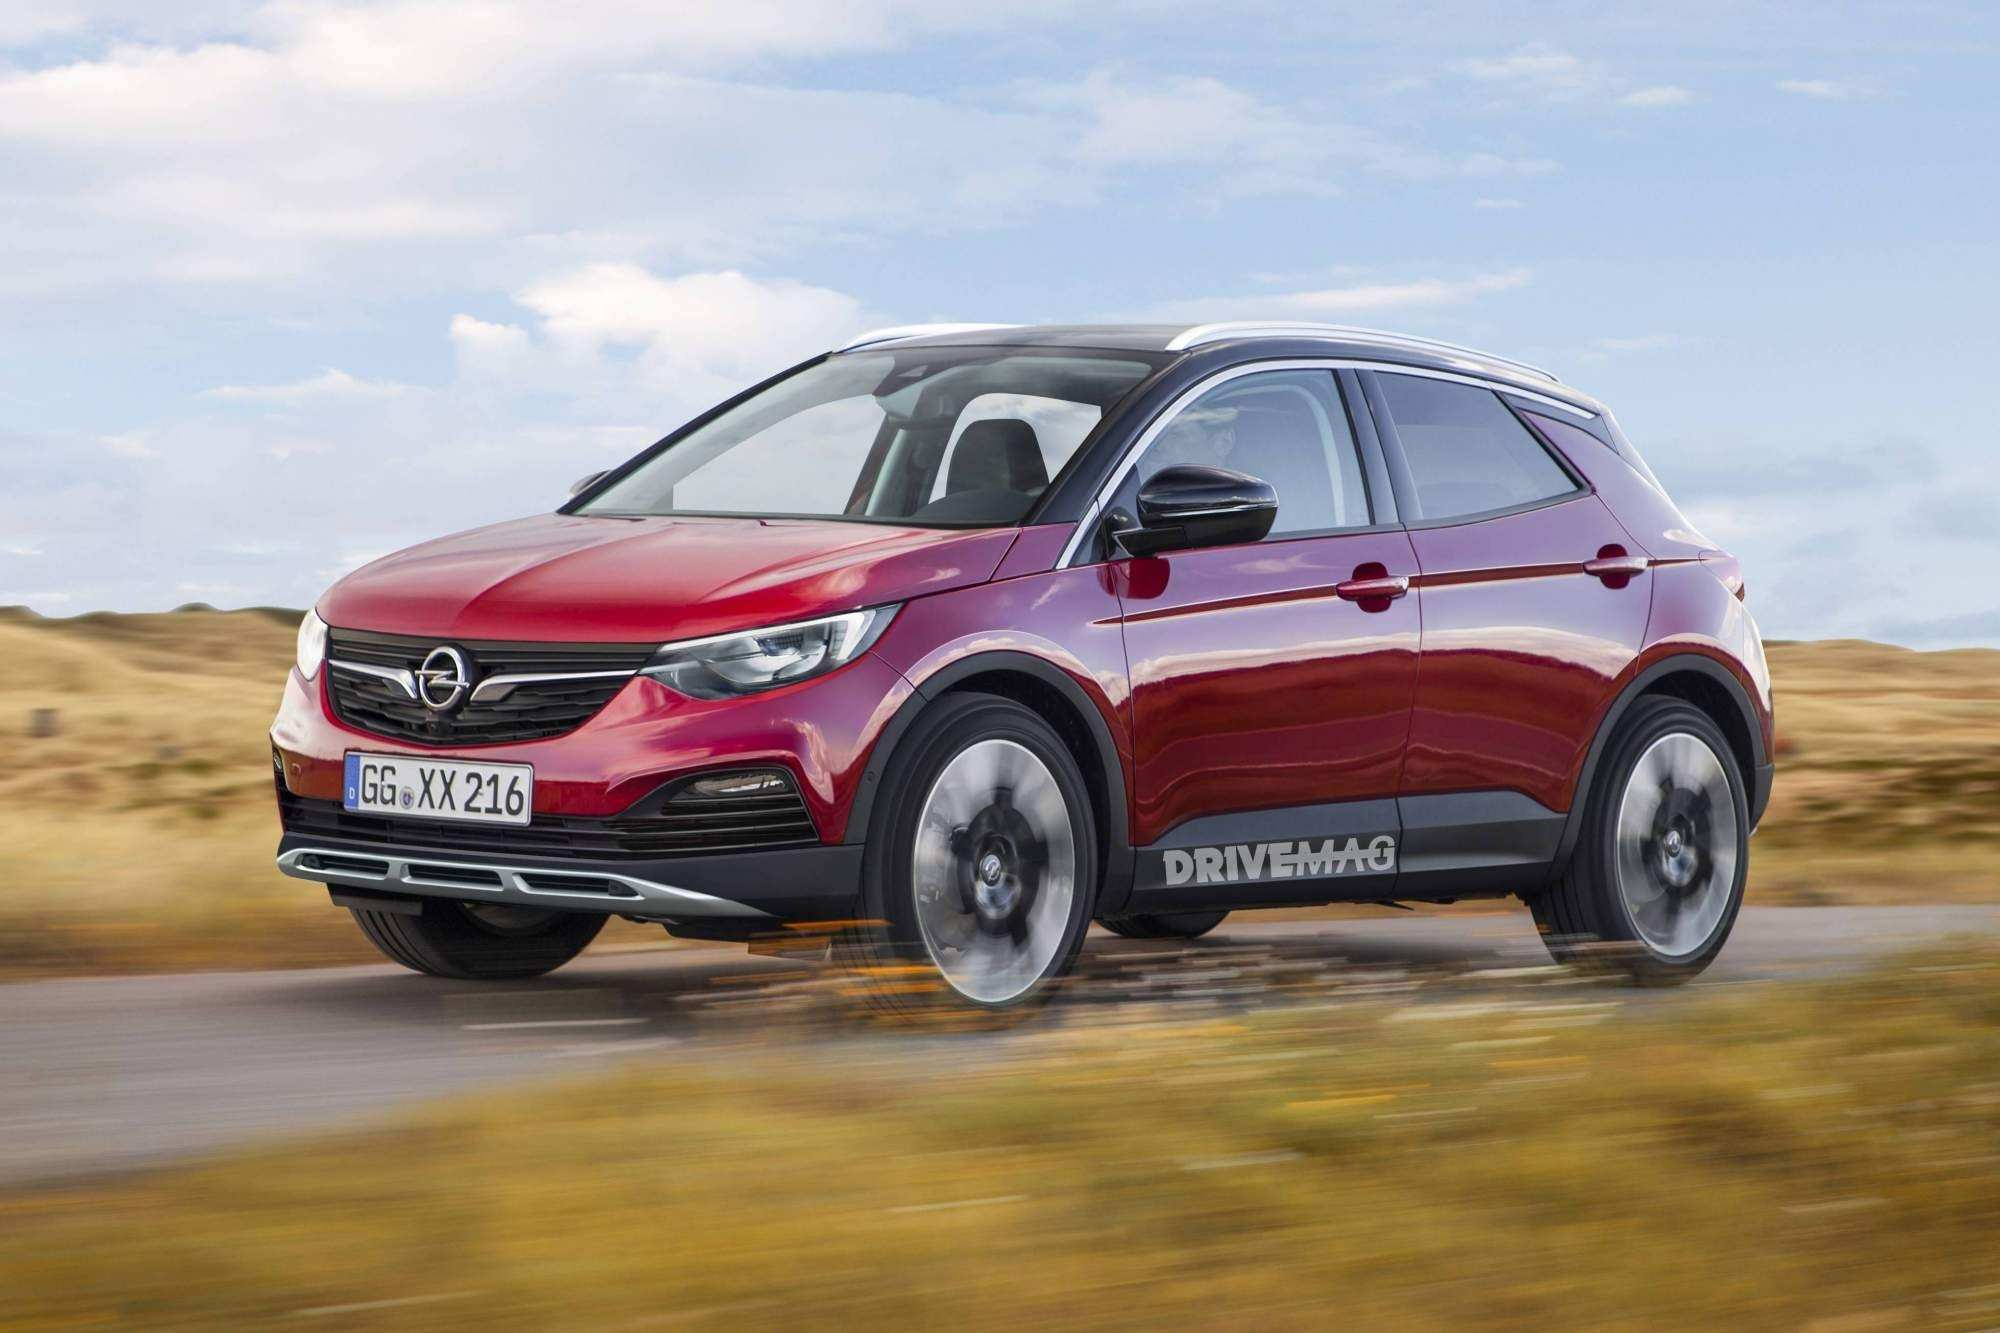 75 Great Nuova Opel Mokka X 2020 Price for Nuova Opel Mokka X 2020